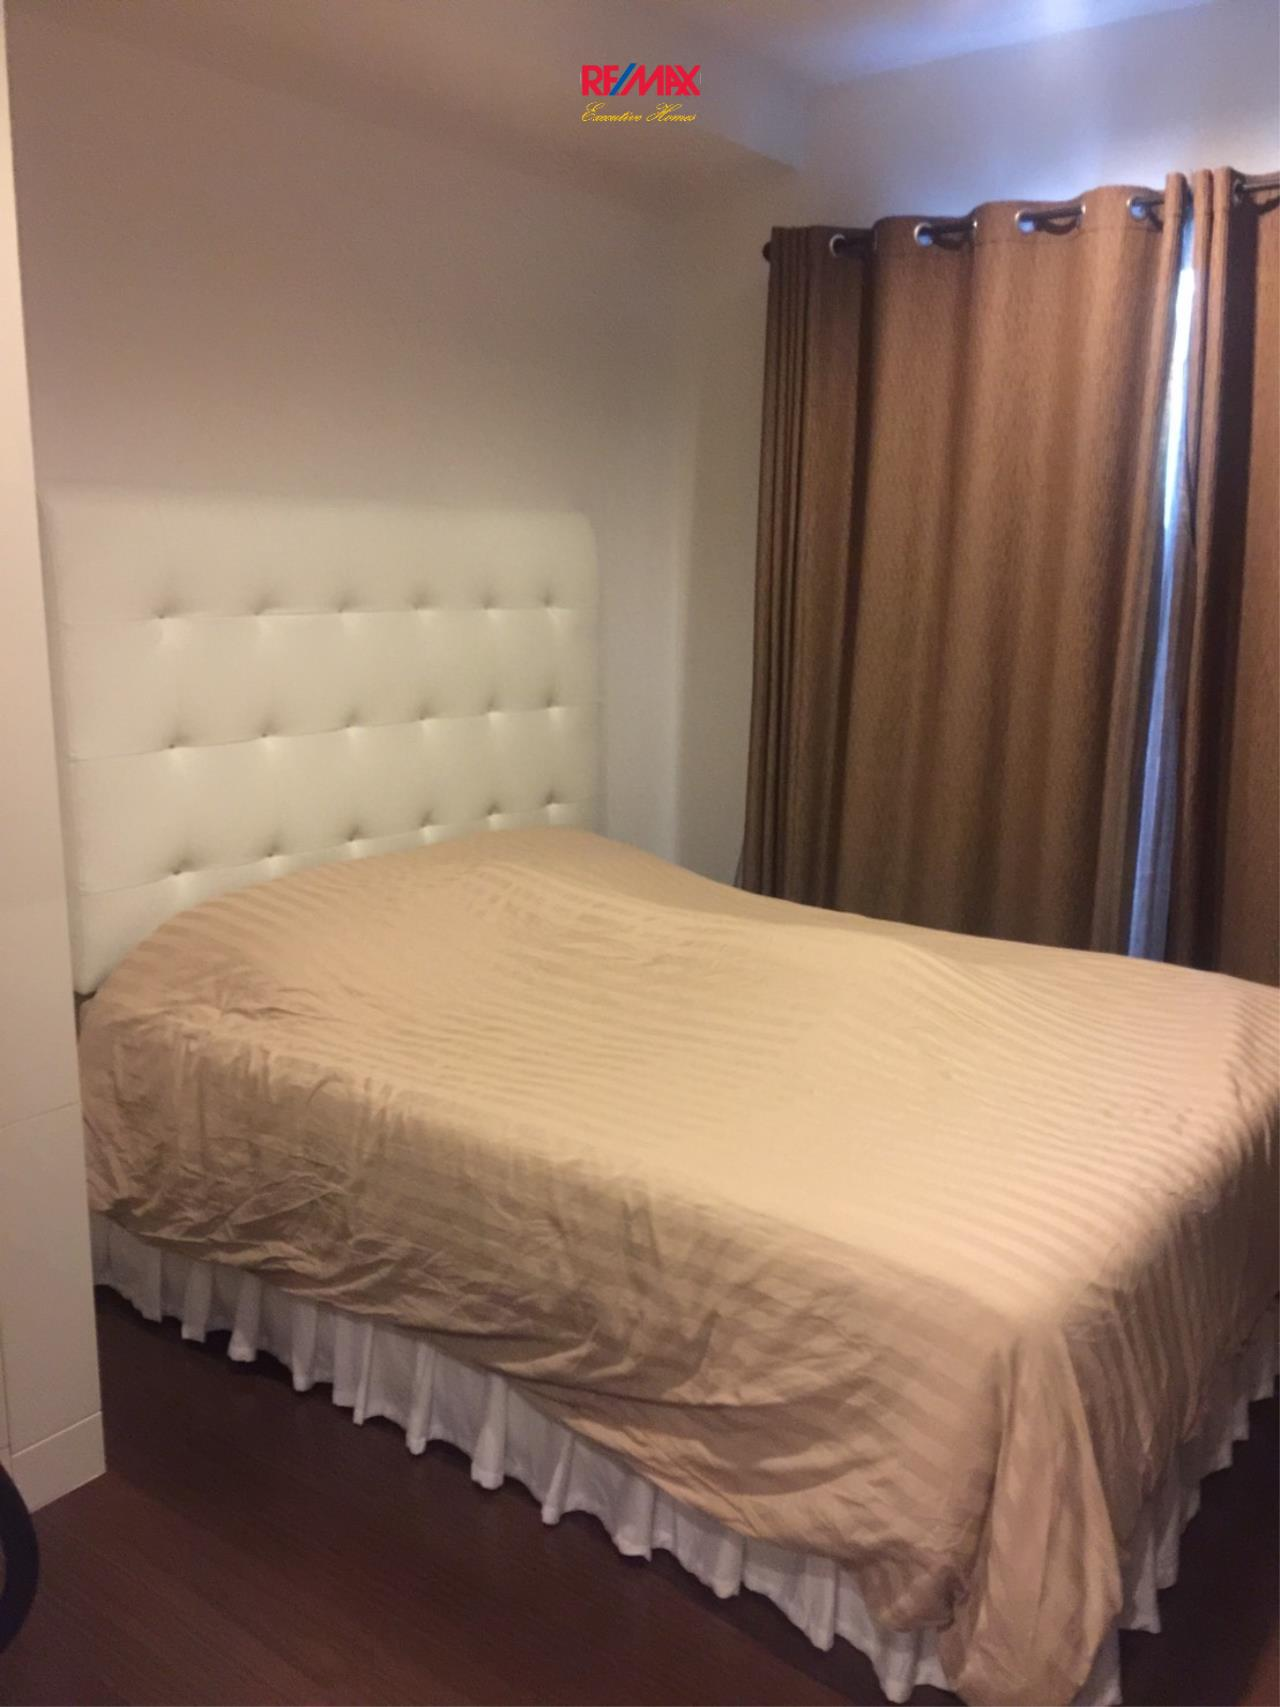 RE/MAX Executive Homes Agency's Stunning 2 Bedroom for Sale Seed Mingle Suan Plu 3